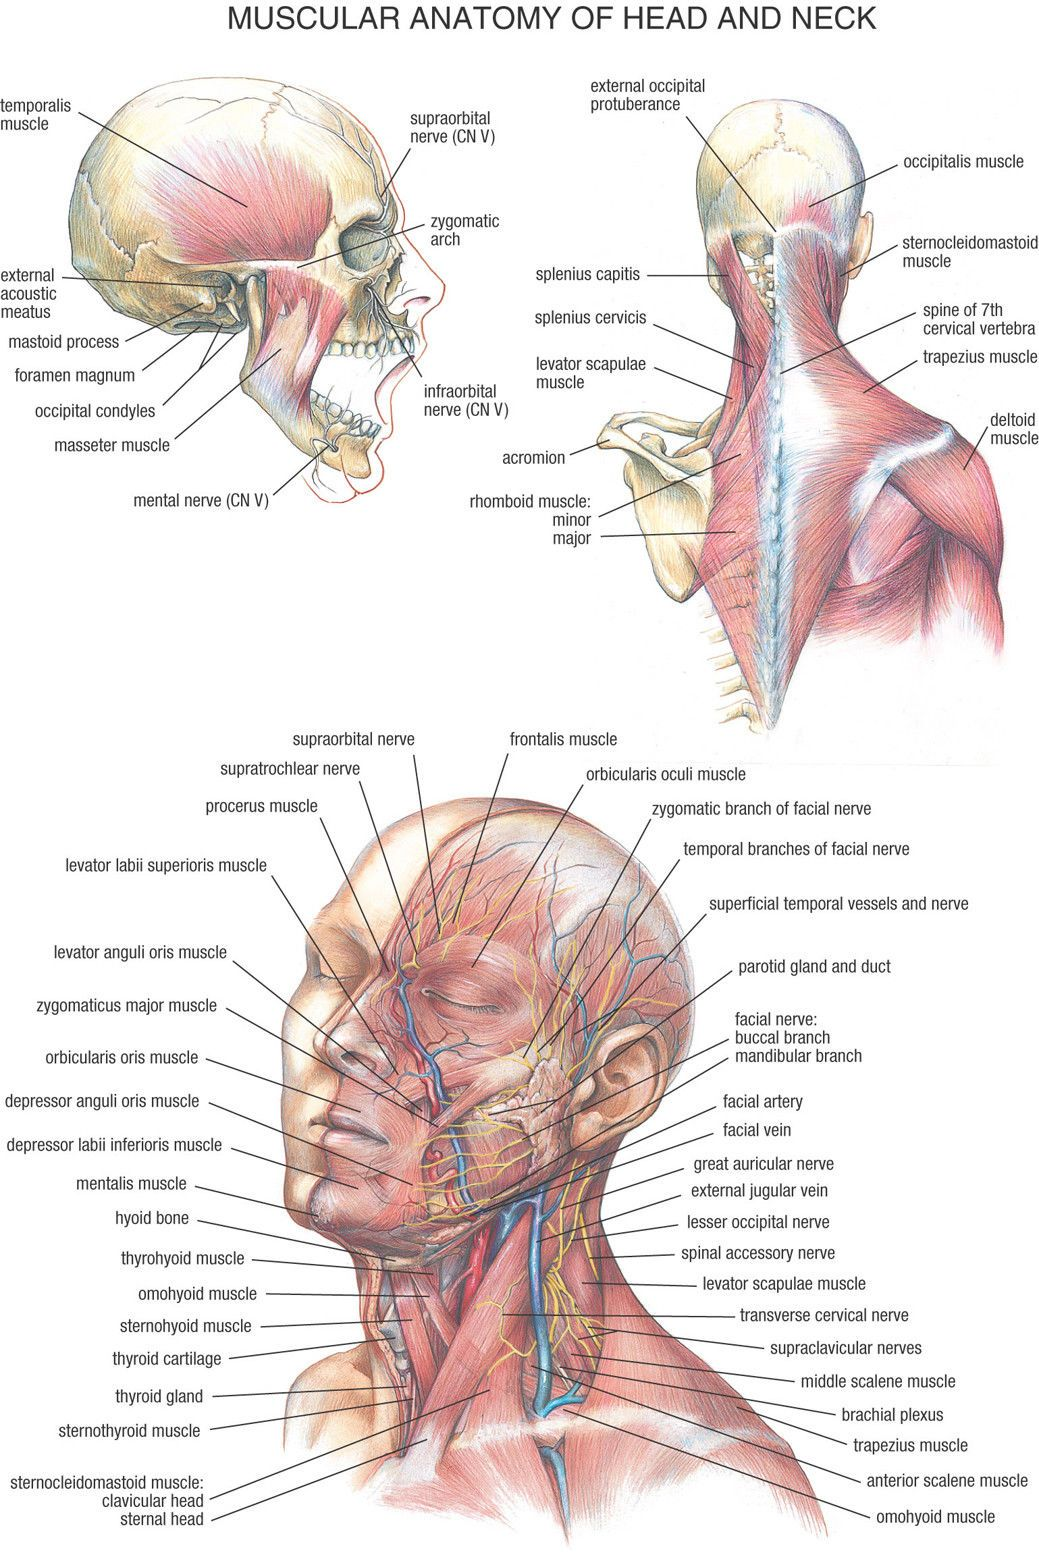 4 99 human muscular anatomy of head and neck poster chart body midcal education ebay collectibles [ 1039 x 1559 Pixel ]